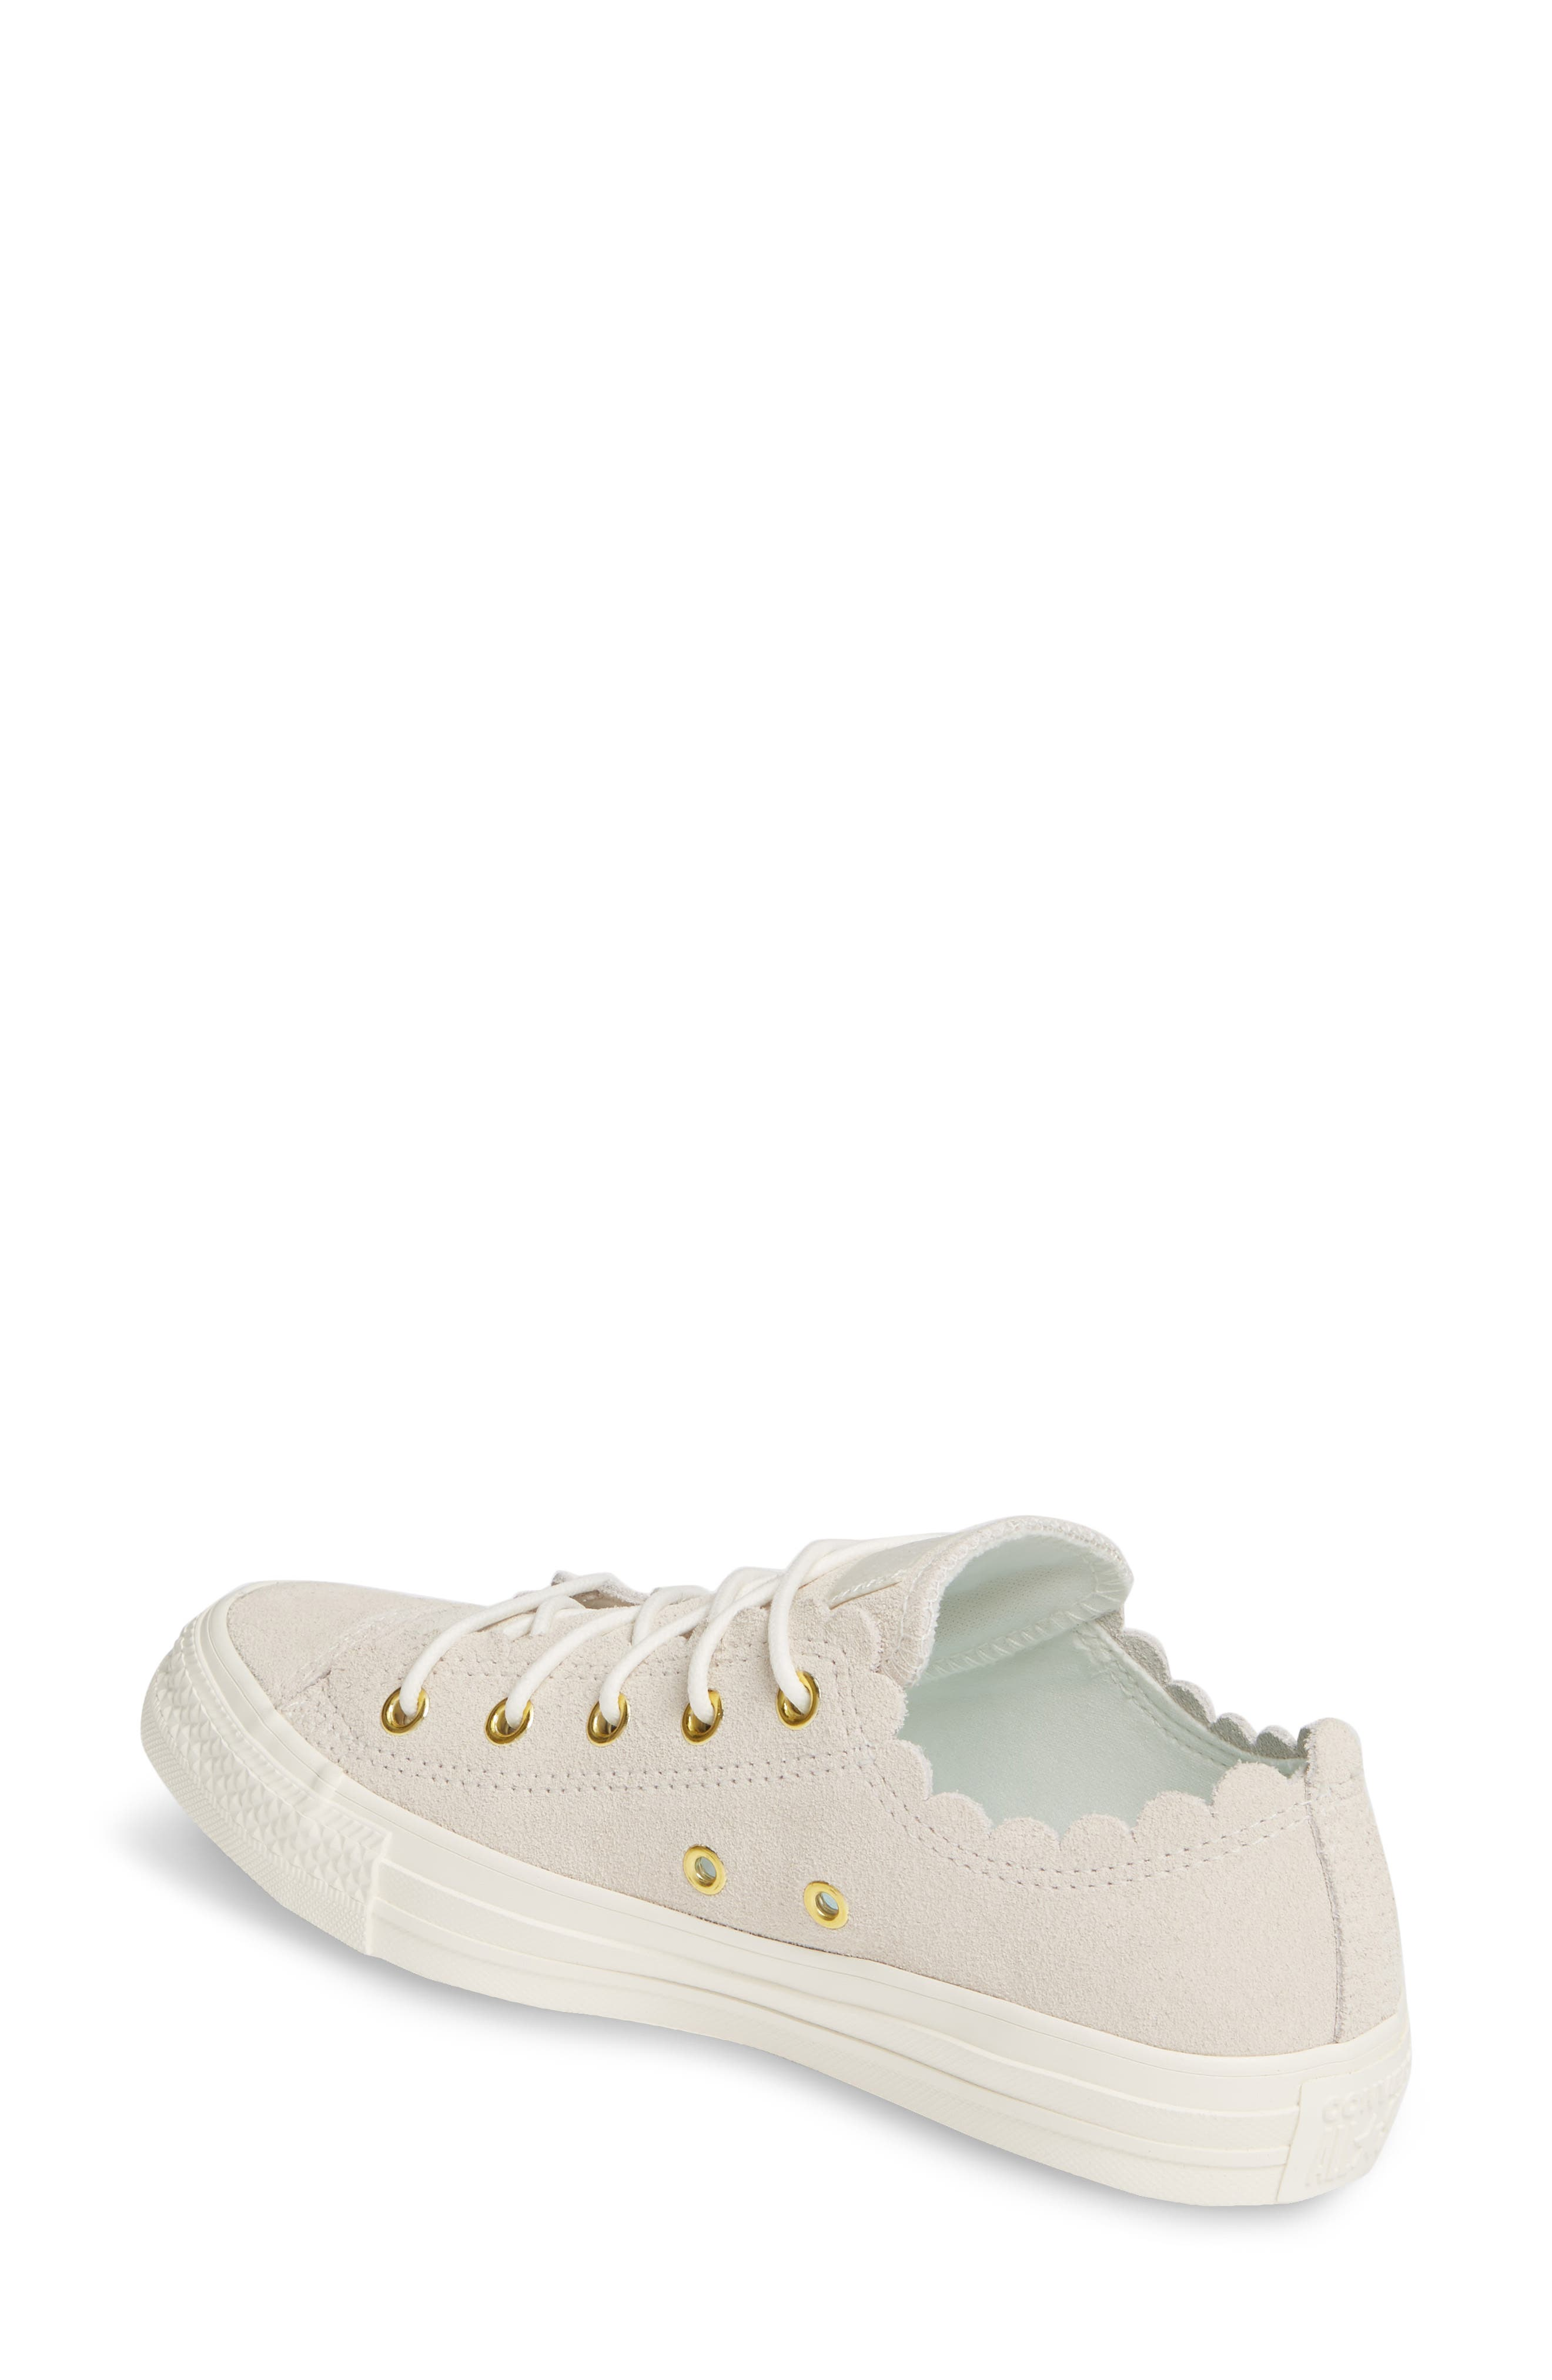 CONVERSE, Chuck Taylor<sup>®</sup> All Star<sup>®</sup> Scallop Low Top Leather Sneaker, Alternate thumbnail 2, color, EGRET/ GOLD/ EGRET